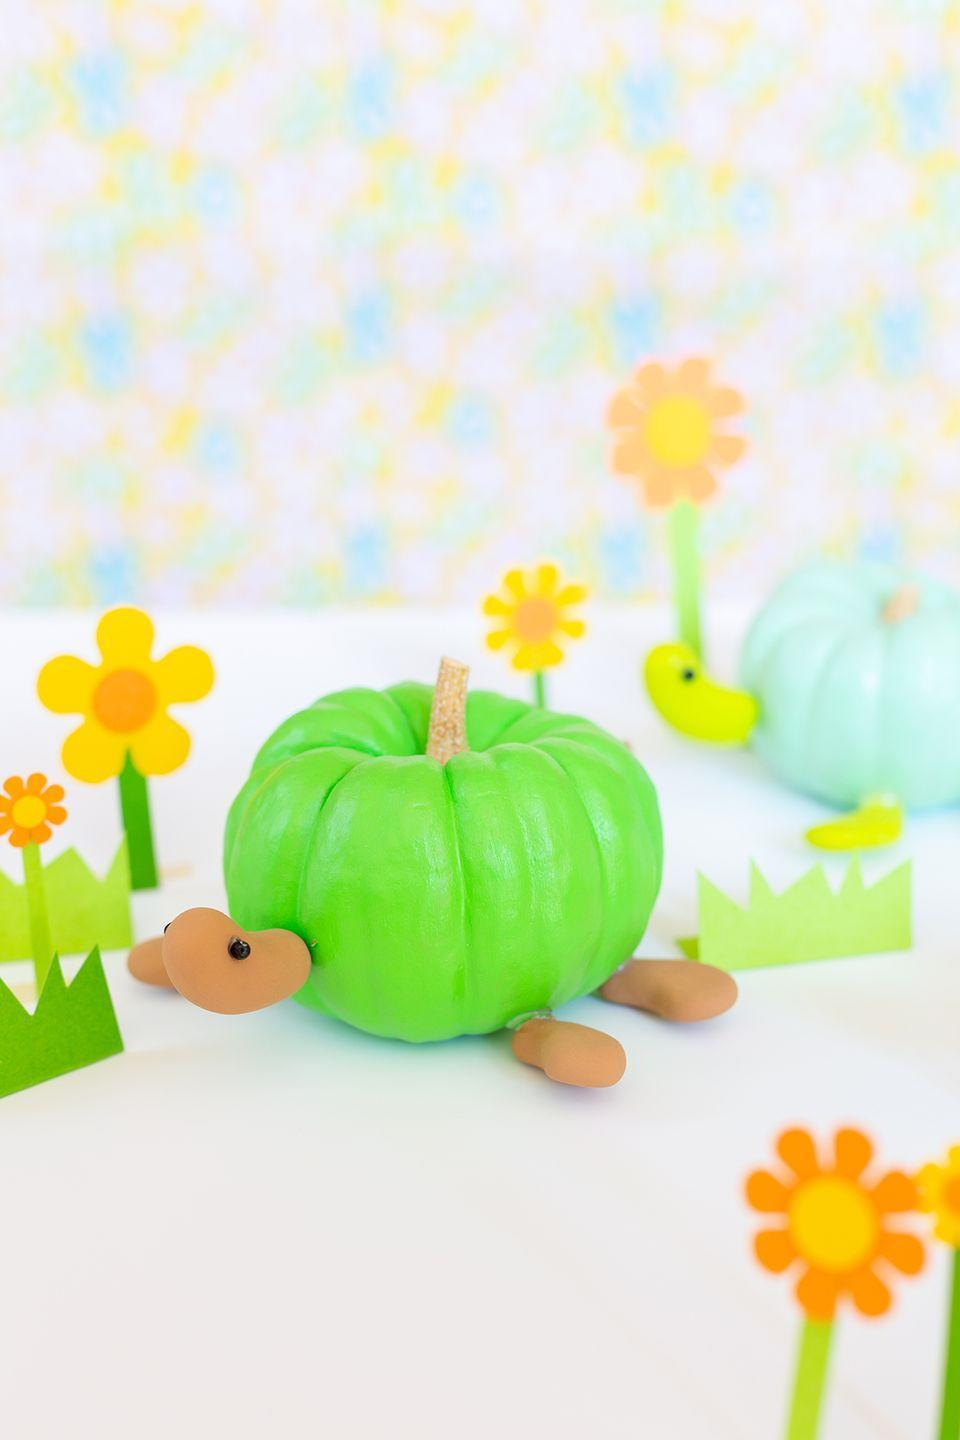 "<p>With moldable clay, paint, and creativity, you can turn mini pumpkins into turtles. Luckily, this pet comes without any added responsibility or cleanup! </p><p><a class=""link rapid-noclick-resp"" href=""https://www.amazon.com/DAS-Hardening-Modeling-Pound-387500/dp/B001GAP4YA/?tag=syn-yahoo-20&ascsubtag=%5Bartid%7C10055.g.22062770%5Bsrc%7Cyahoo-us"" rel=""nofollow noopener"" target=""_blank"" data-ylk=""slk:SHOP MODELING CLAY"">SHOP MODELING CLAY</a></p><p><em><a href=""http://www.awwsam.com/2019/10/diy-turtle-pumpkins.html"" rel=""nofollow noopener"" target=""_blank"" data-ylk=""slk:Get the tutorial at Aww Sam »"" class=""link rapid-noclick-resp"">Get the tutorial at Aww Sam »</a></em></p>"